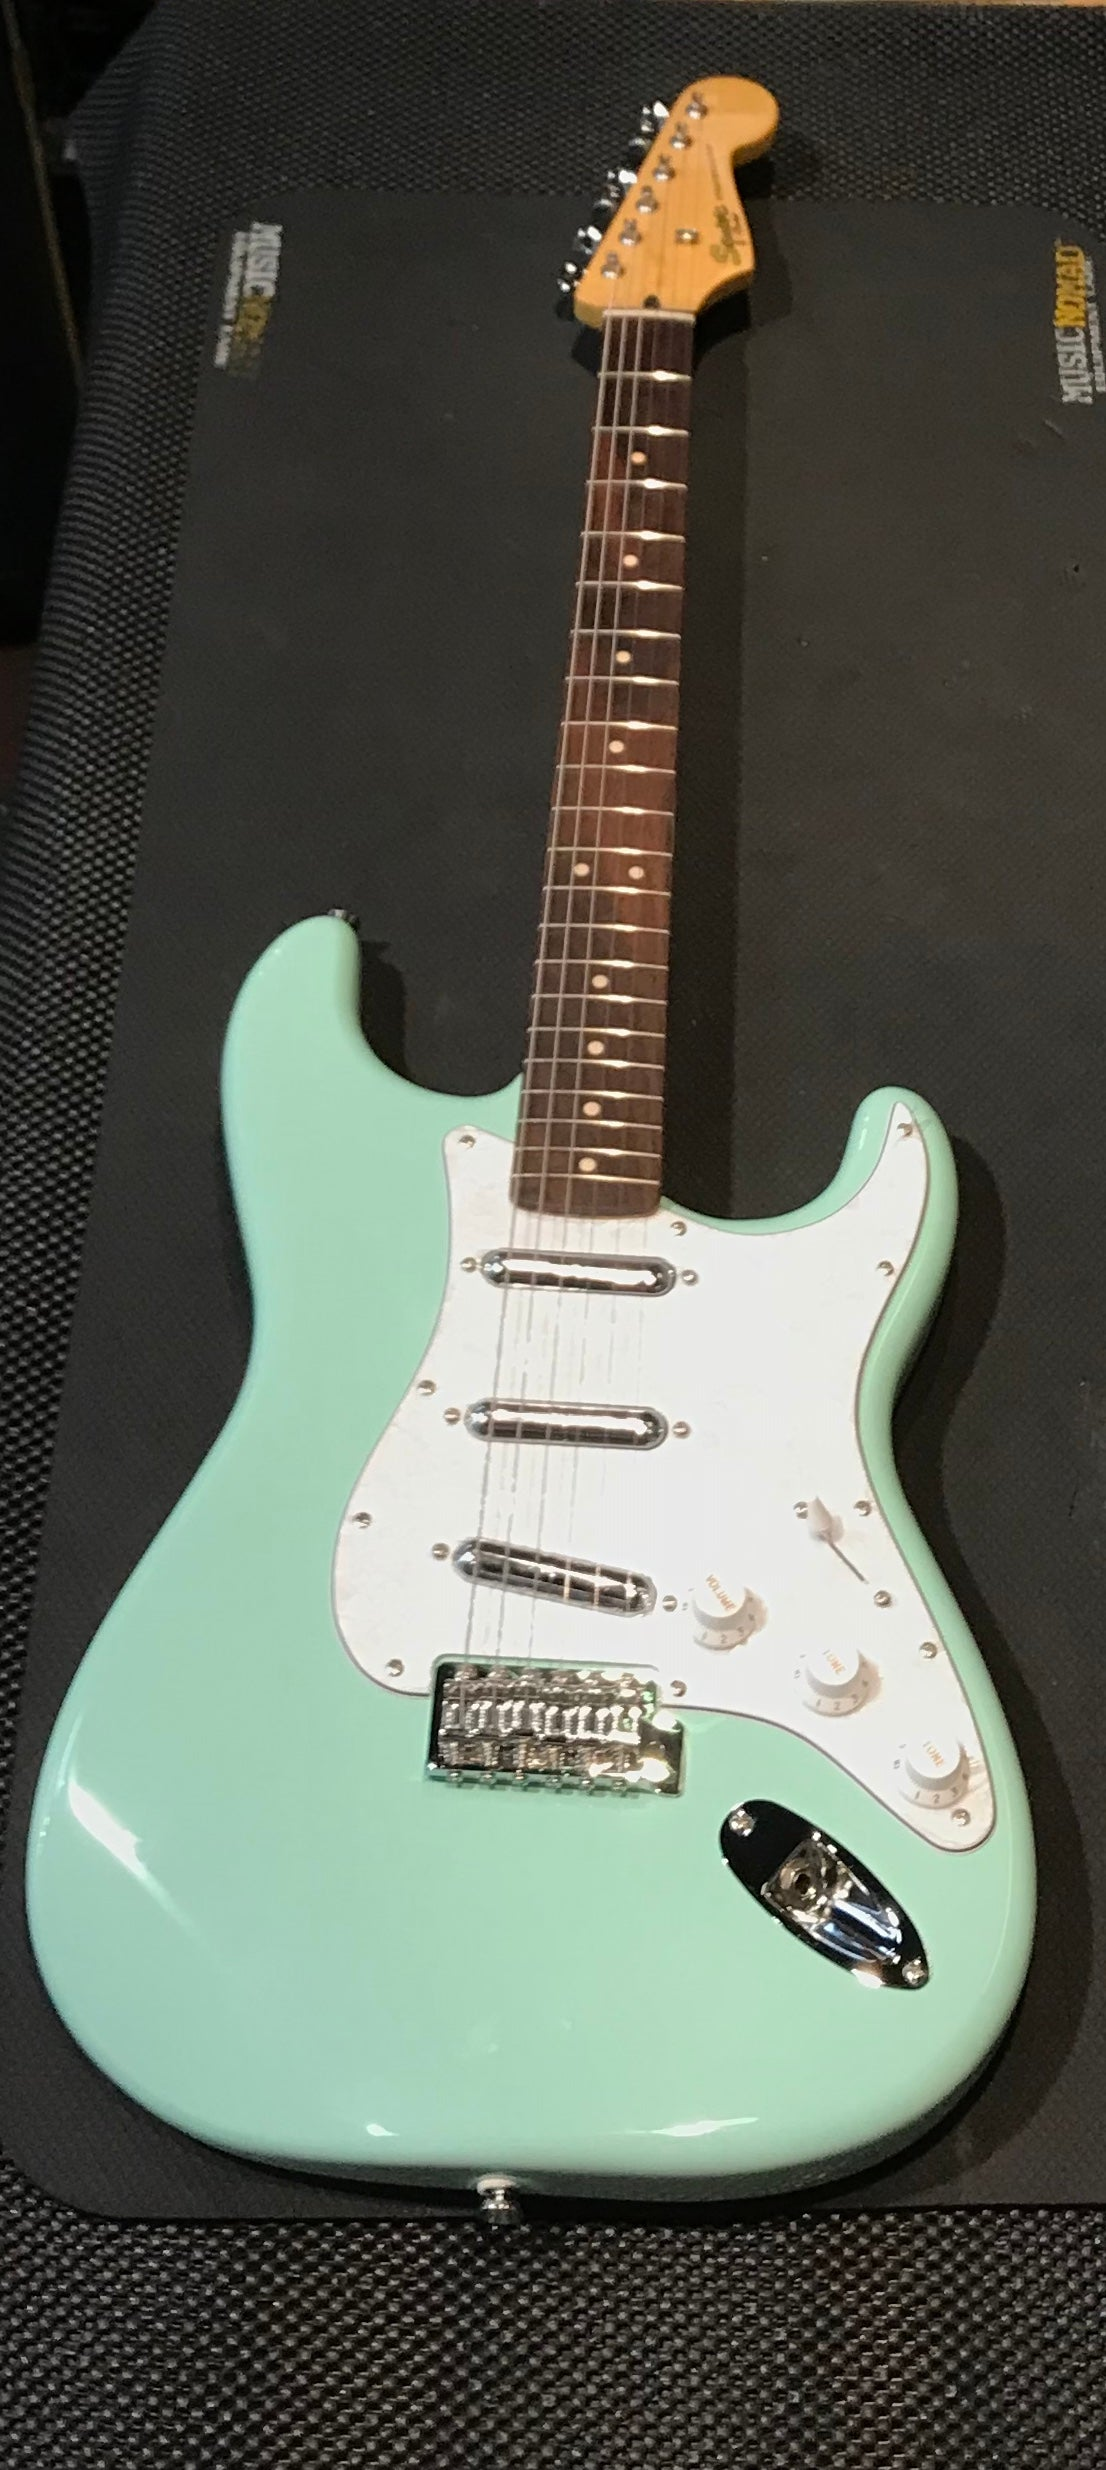 squier vintage modified surf stratocaster wadsworth music